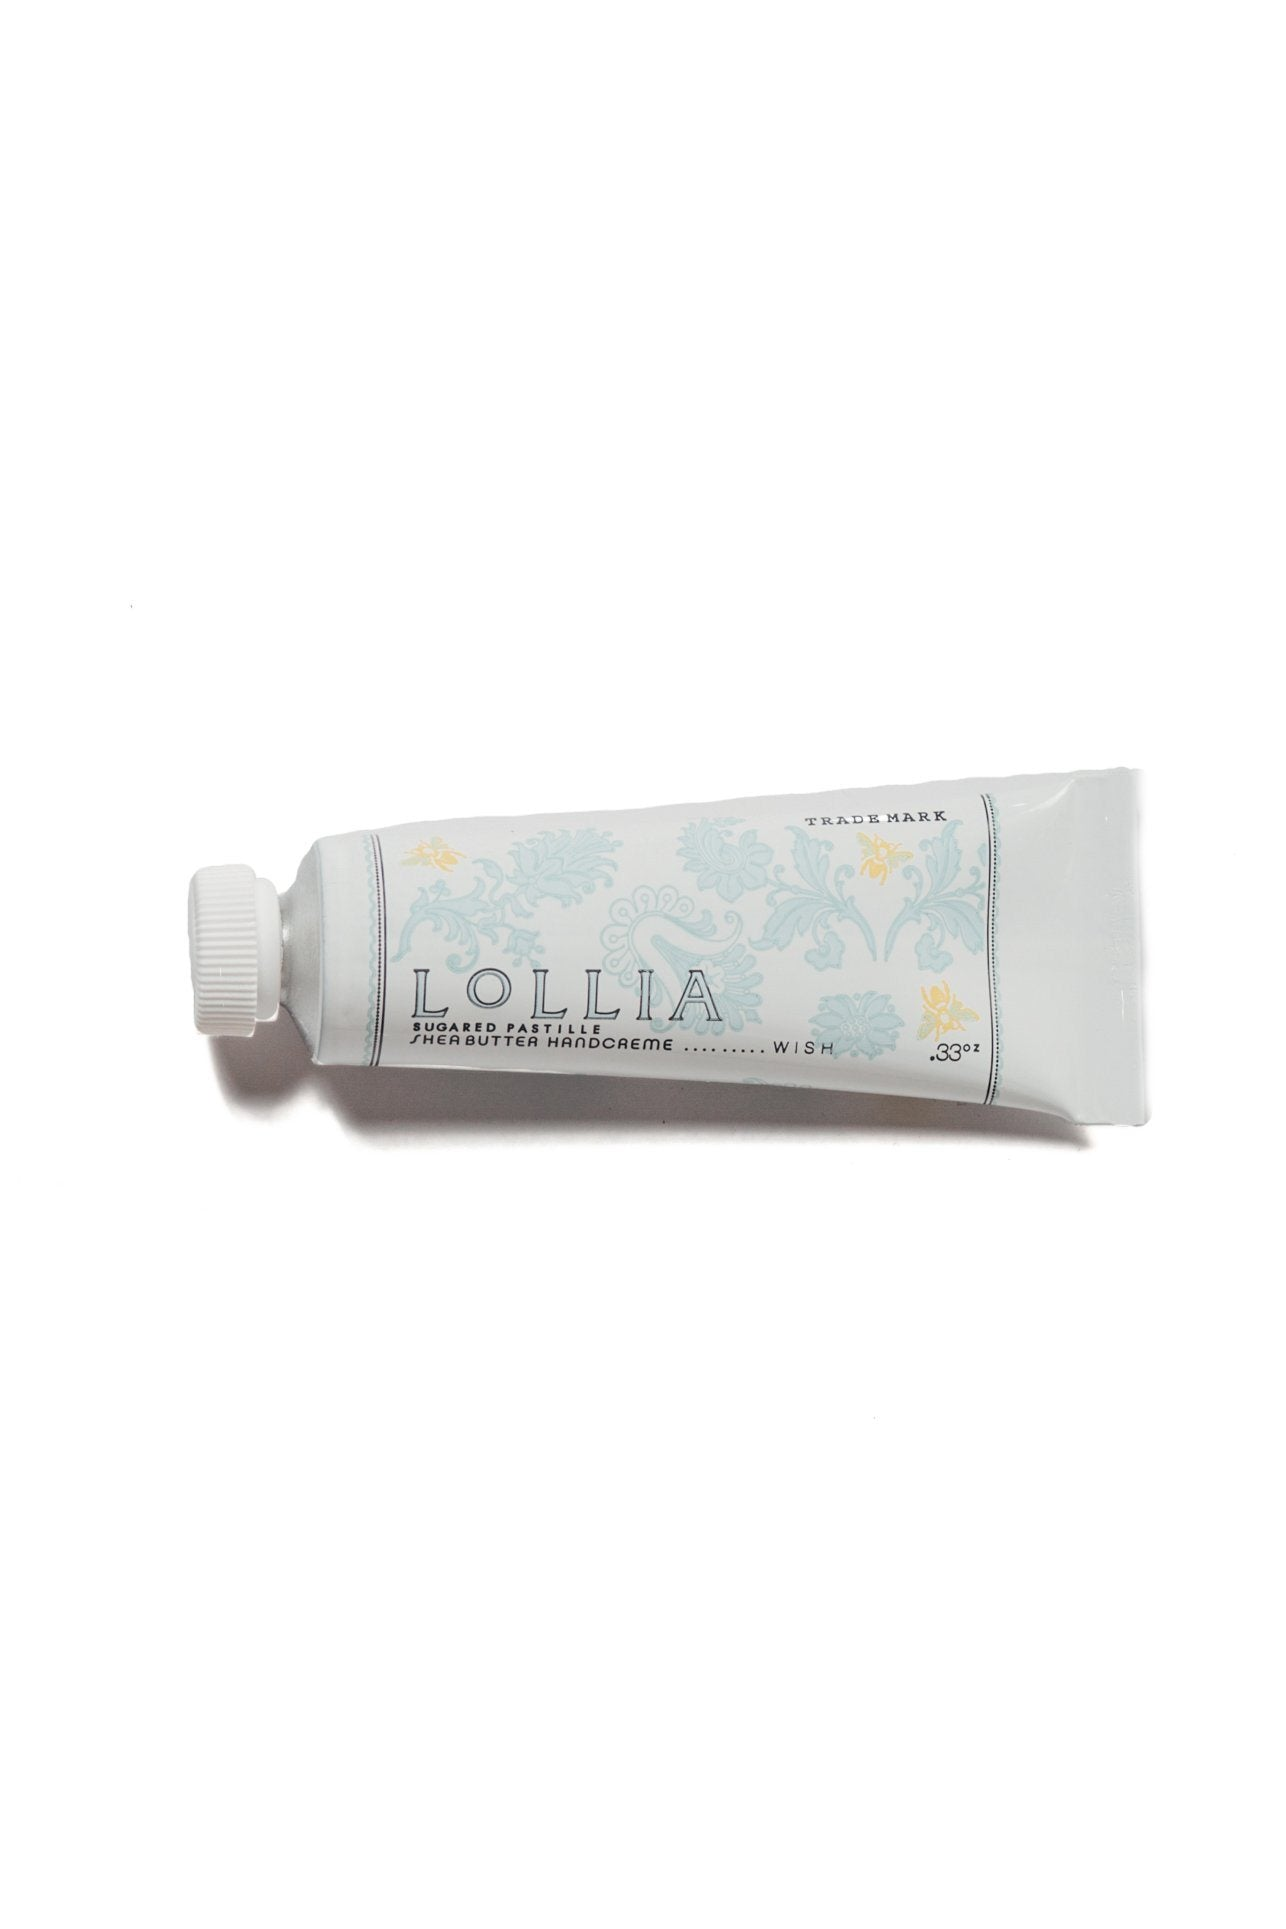 Lollia sugared pastille petit handcreme wish travel size